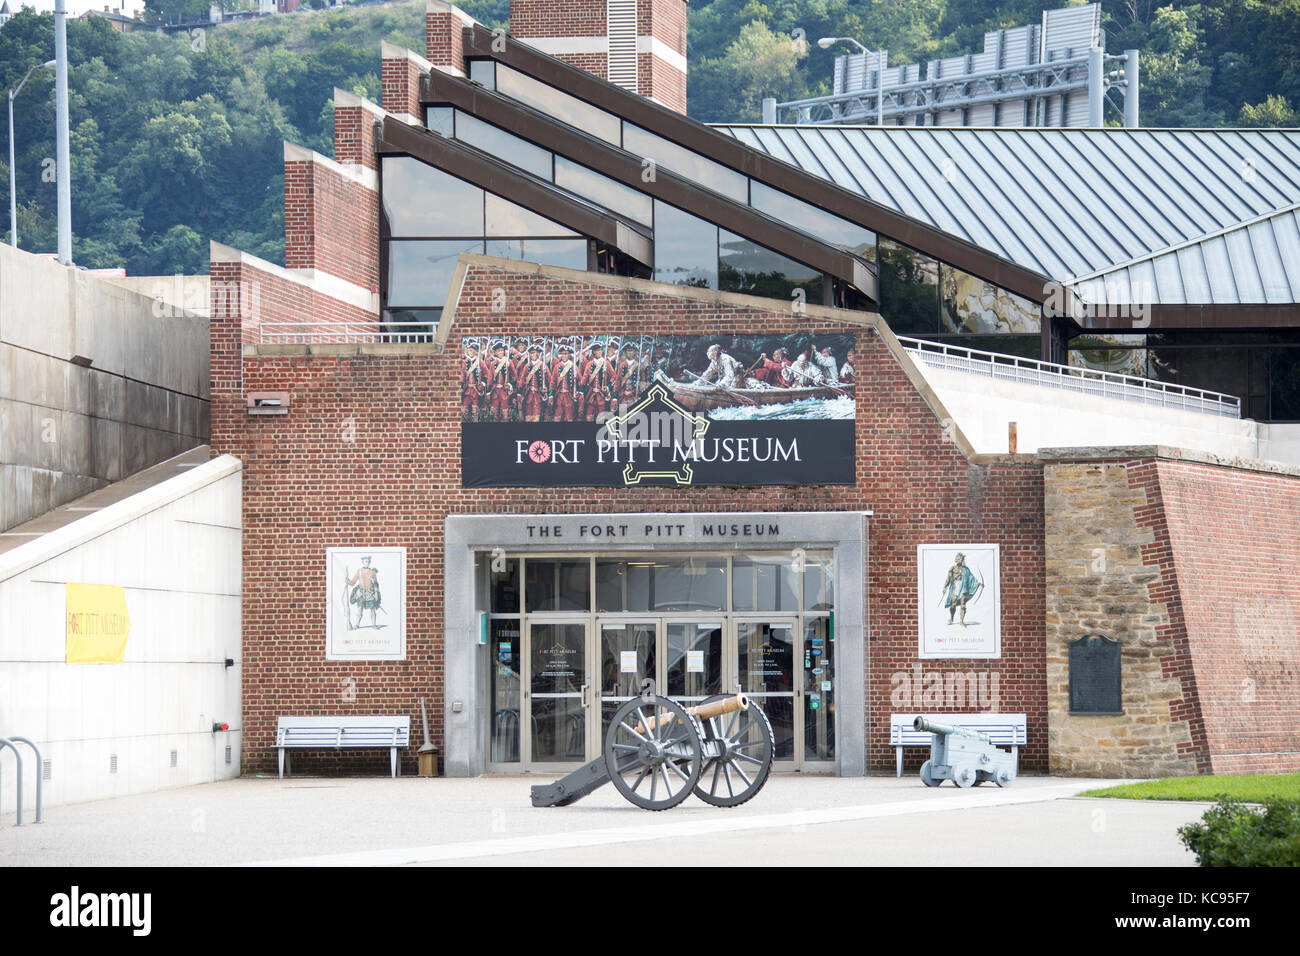 Fort Pitt Museum,, Point State Park, Pittsburgh, PA, USA Stock Photo